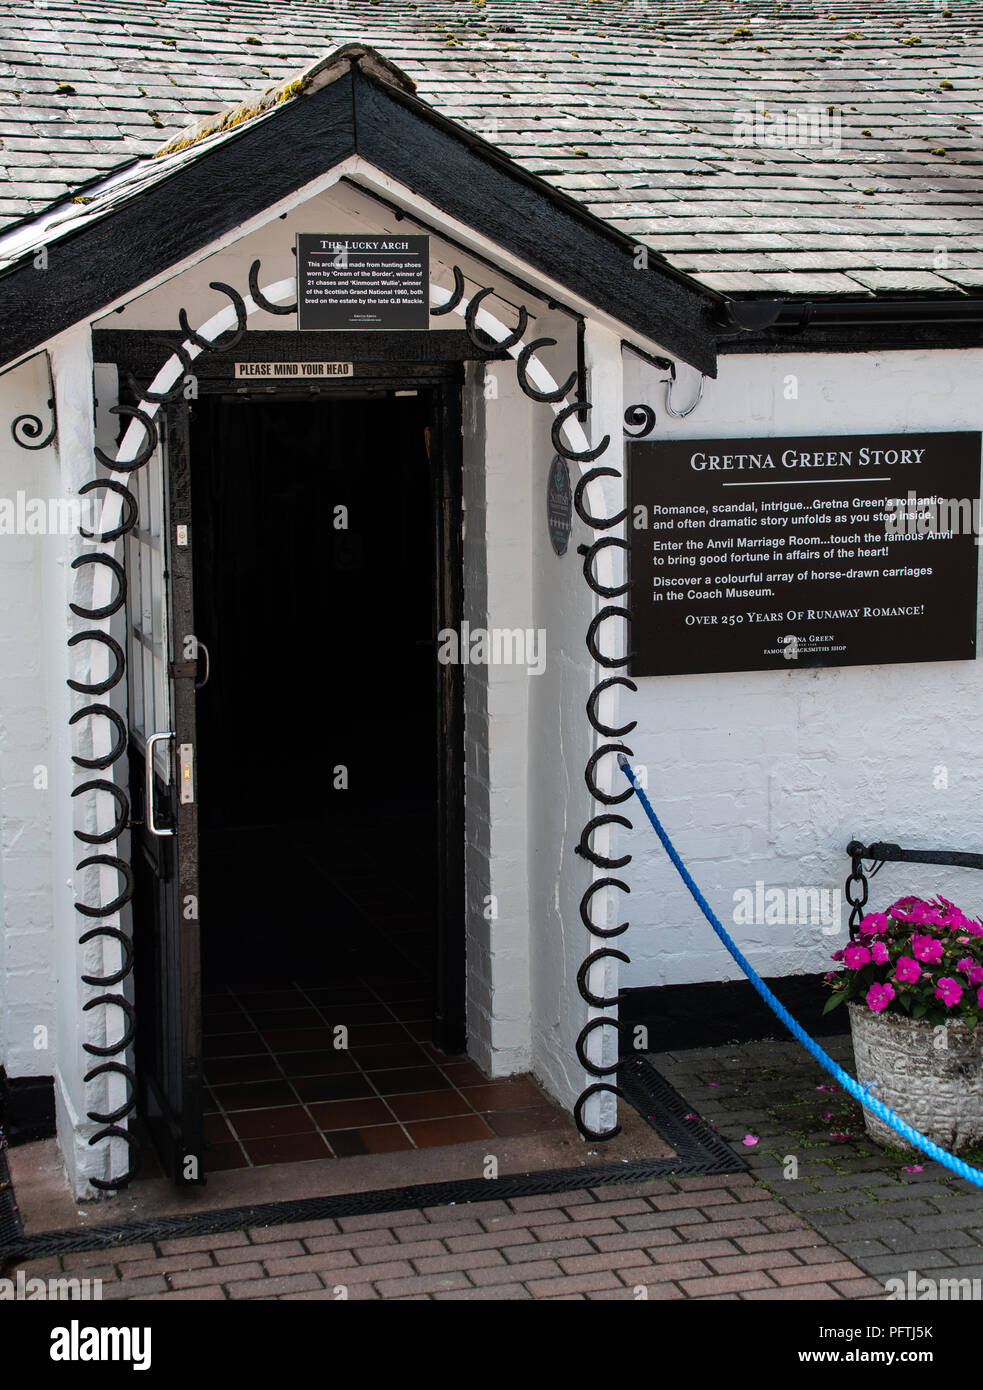 Gretna Green, United Kingdom - August 08 2018:   A doorway decorated with horseshoes for good luck, used by couples getting married at Gretna Green's  - Stock Image